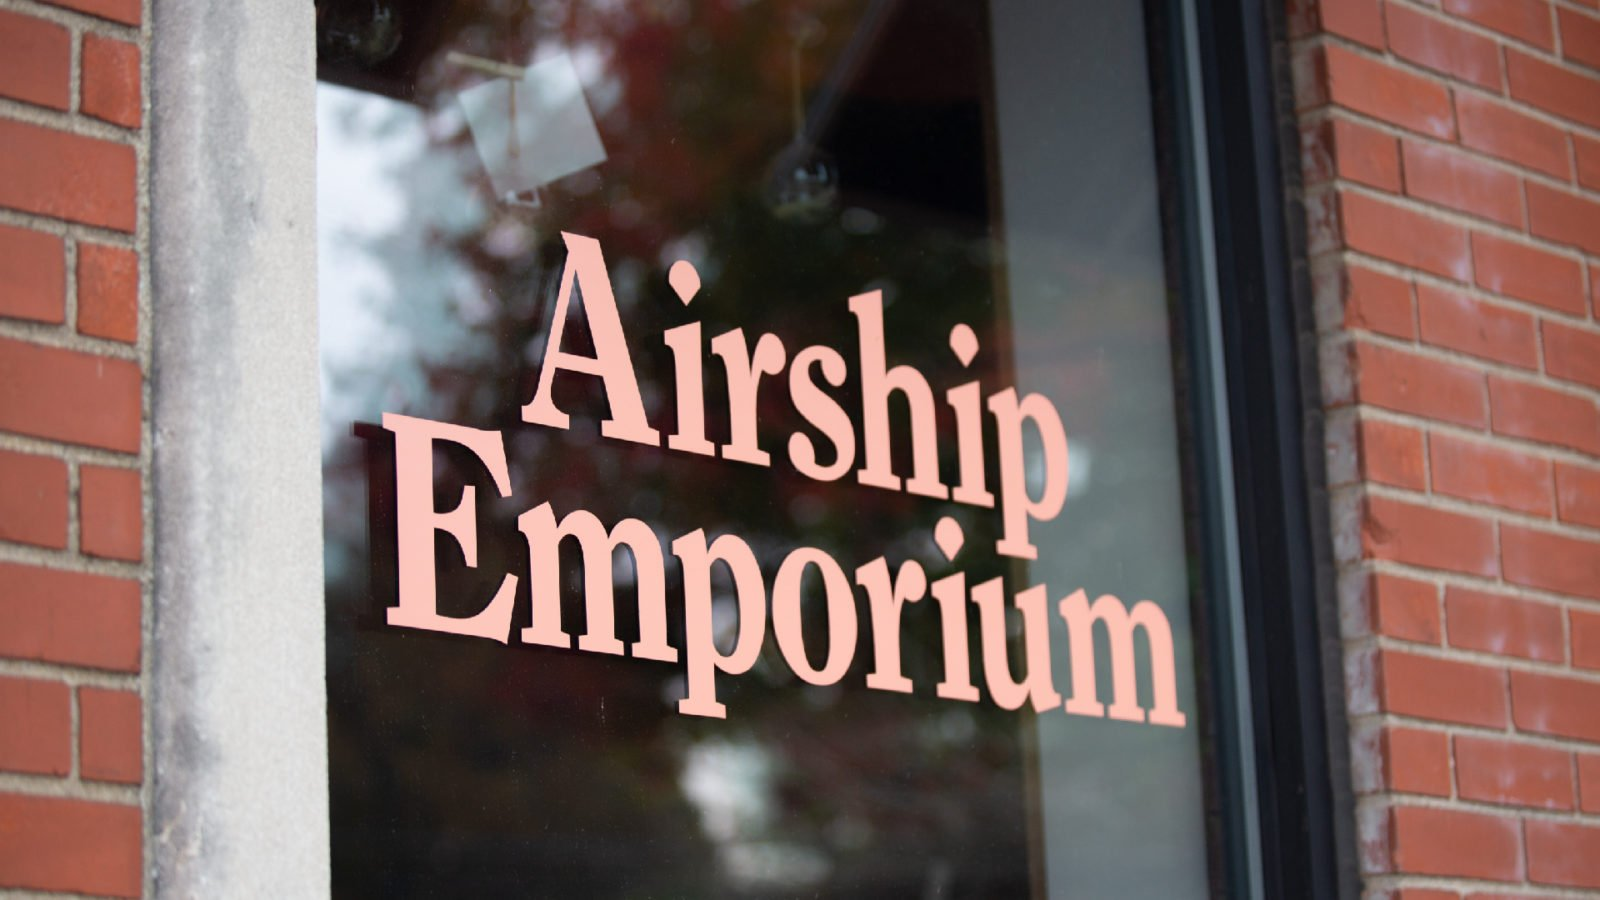 The Opposite Shop: Airship Emporium Door Signage